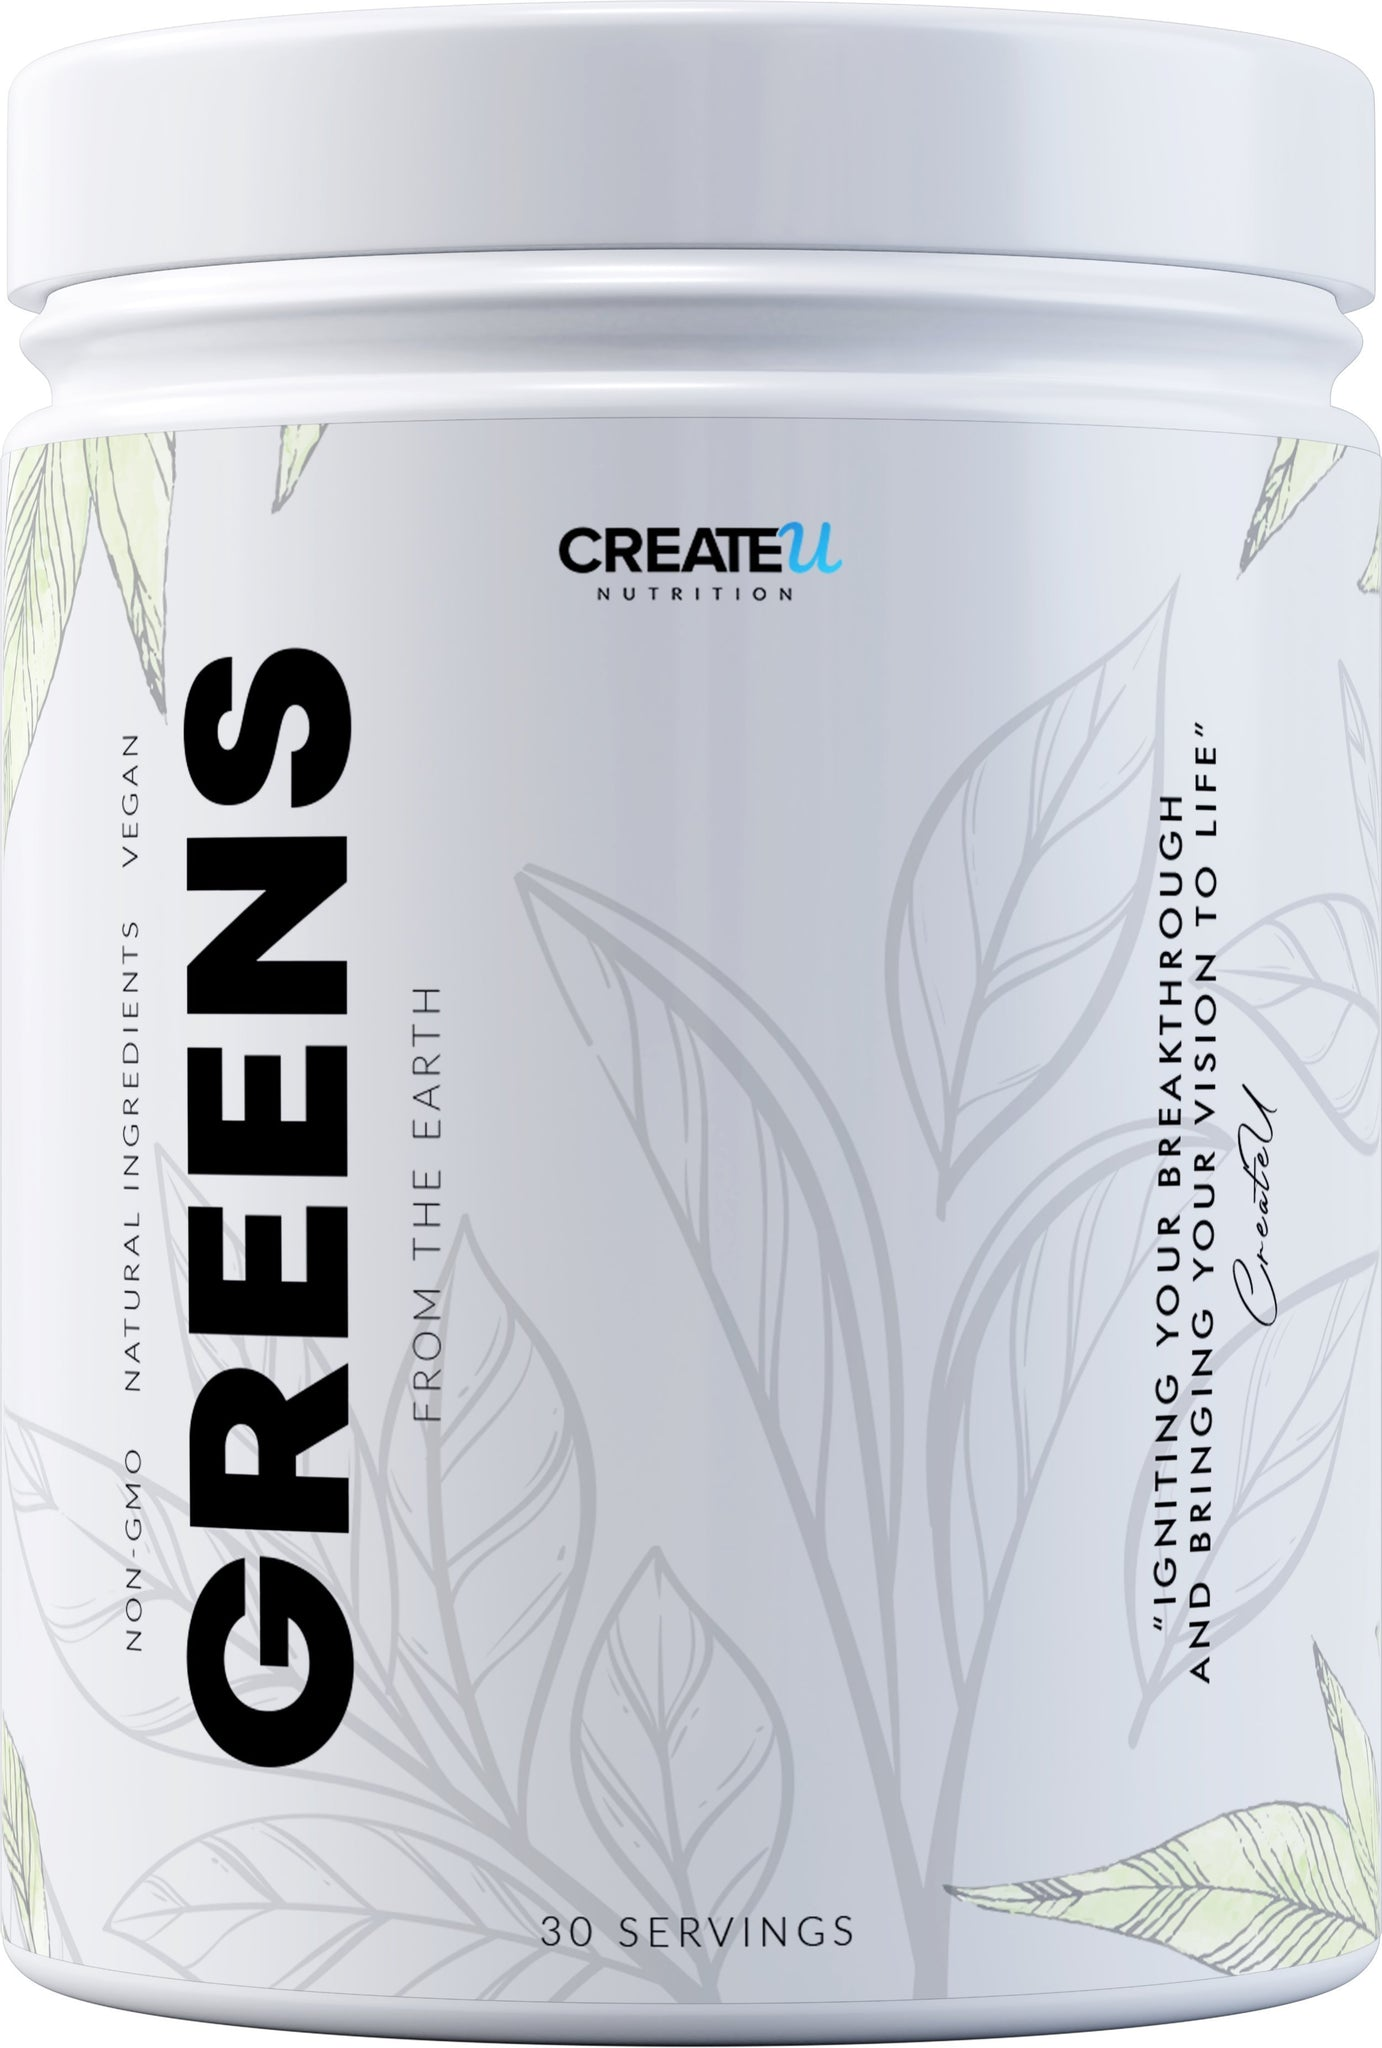 Lucky - Green Juice (Backorder) supplement CreateUNutrition.com